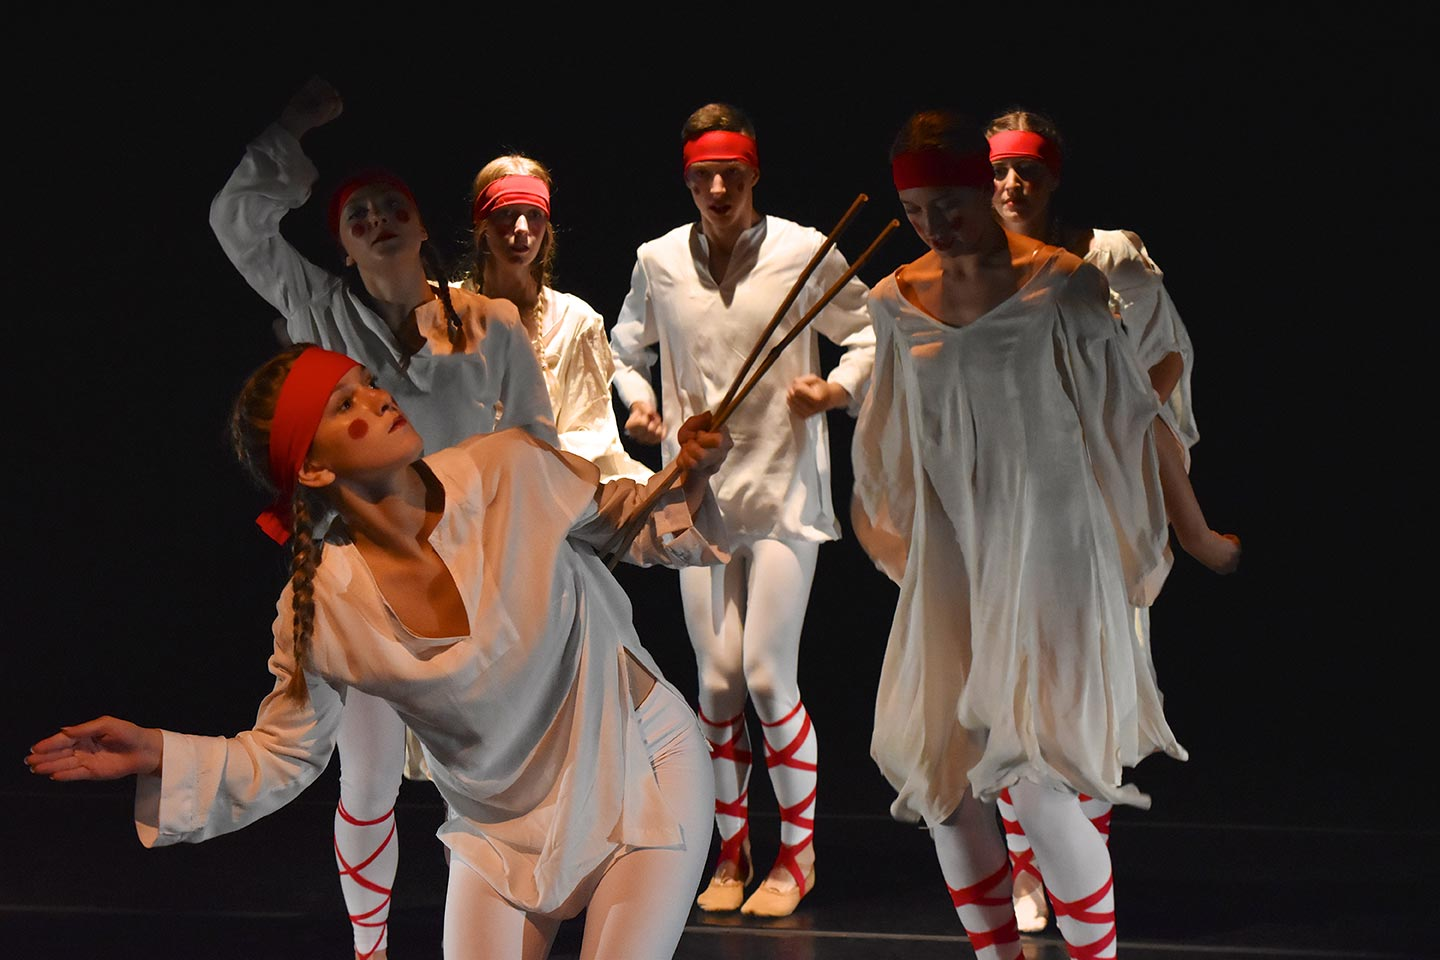 O U dance students perform The Rite of Spring in white robes with red headbands